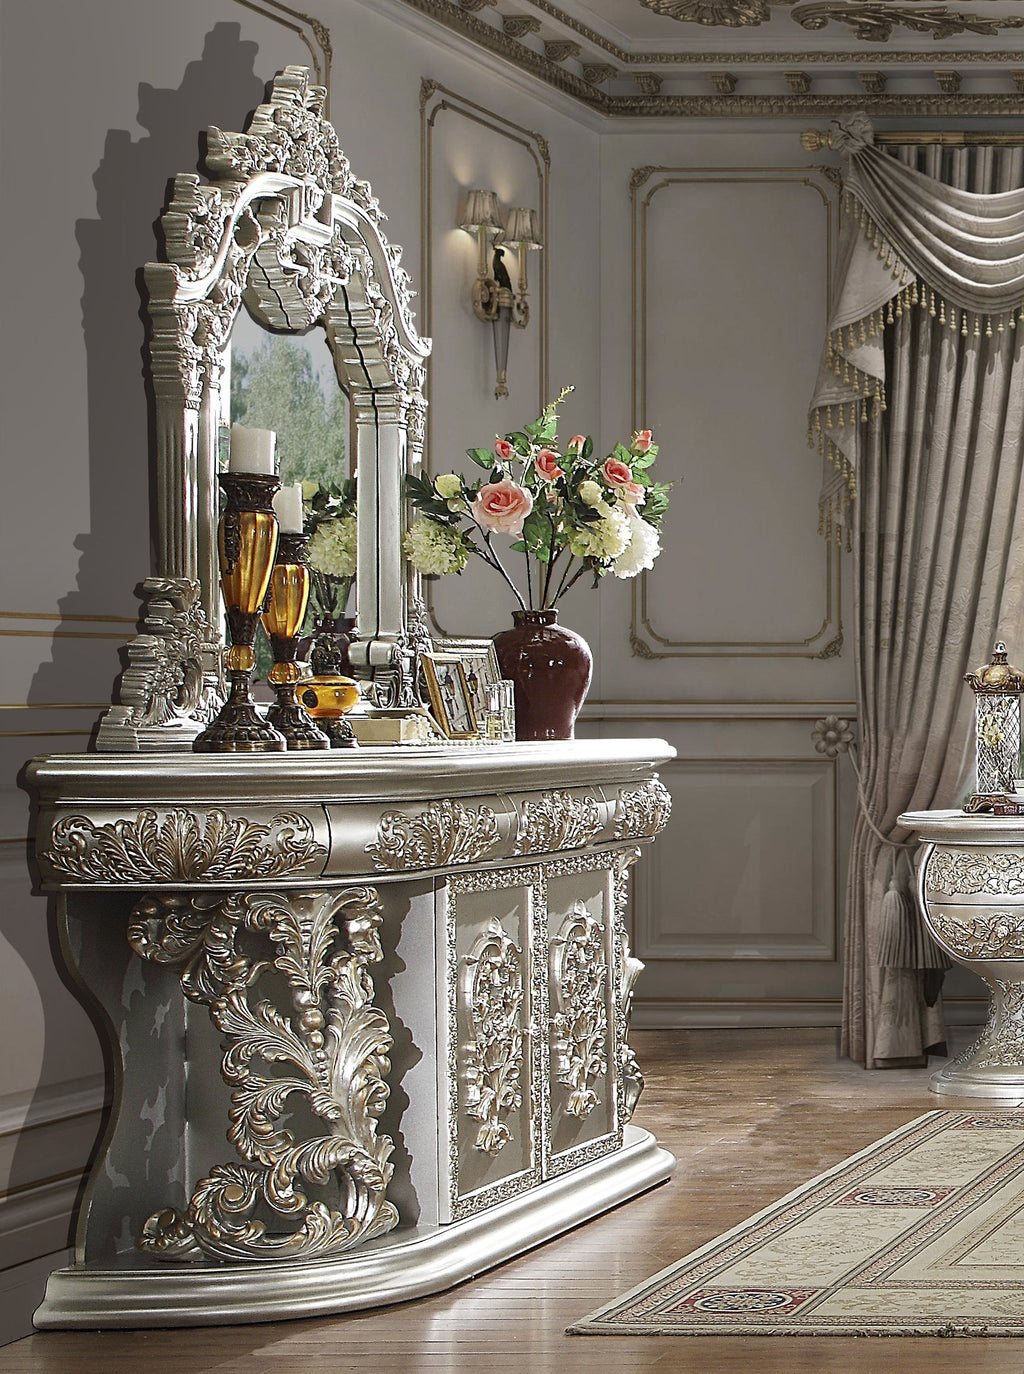 Dresser in Metallic Silver Finish DR8088 European Traditional Victorian